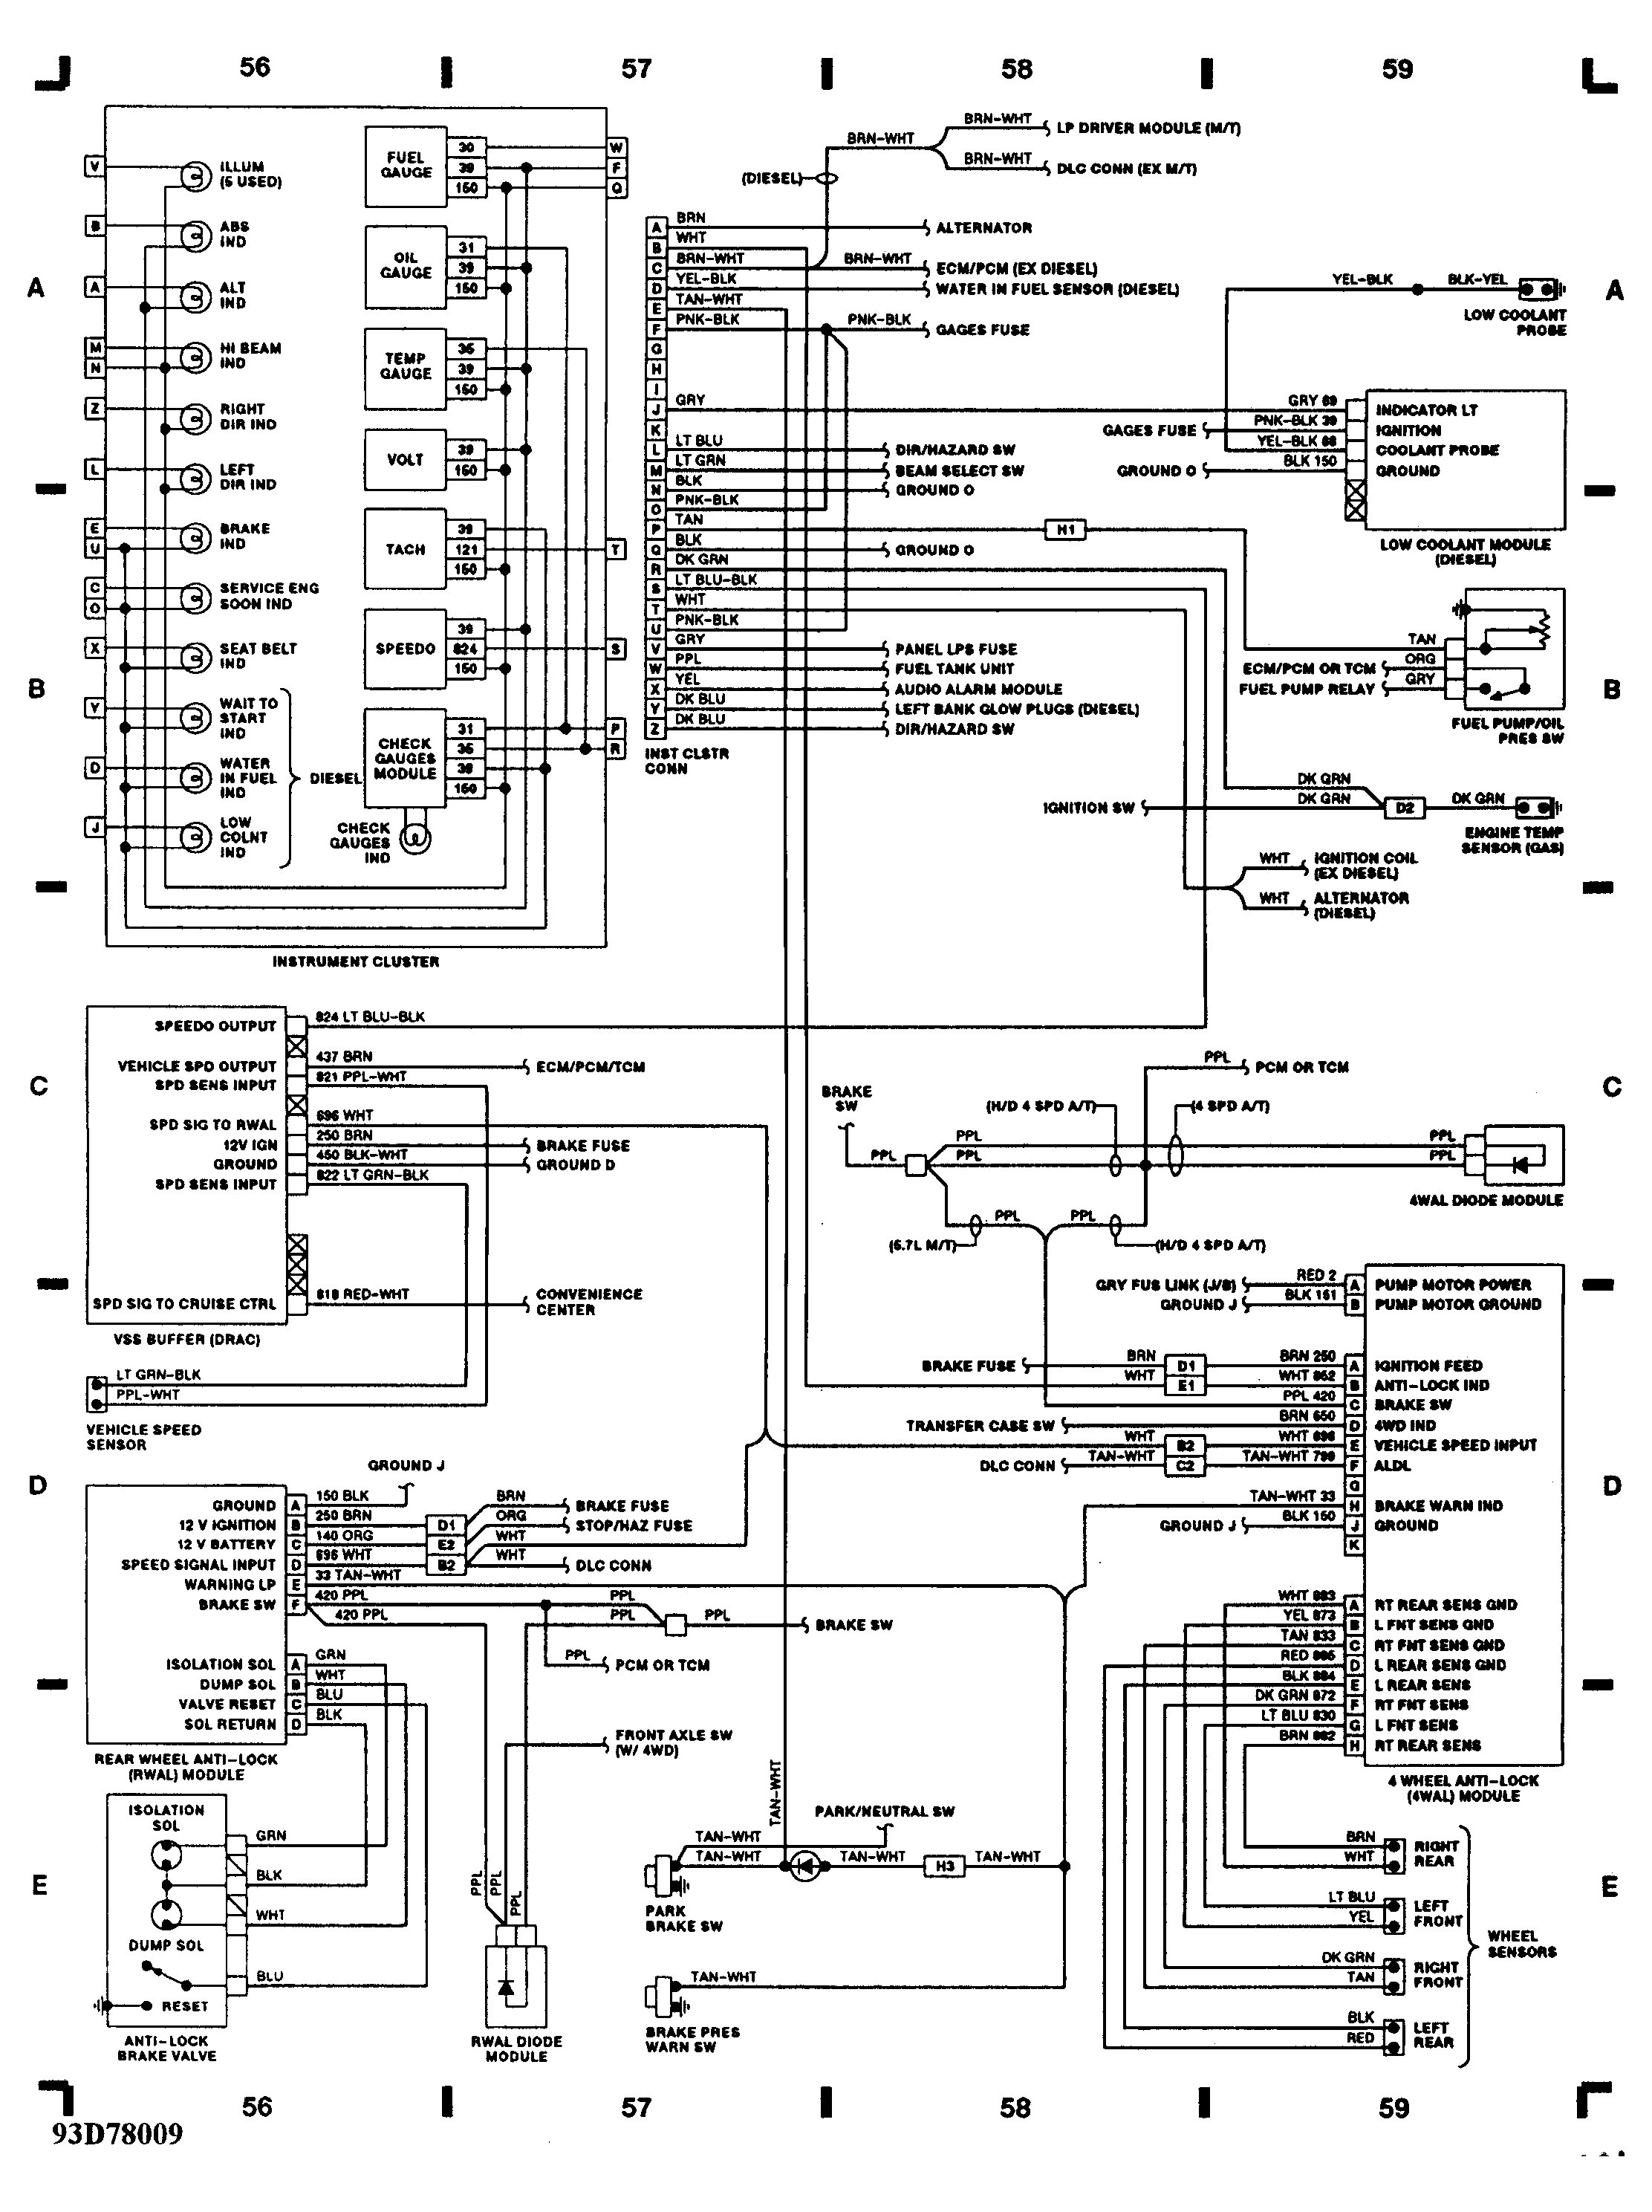 93 chevy lumina engine diagram all wiring diagram 1993 Mazda Protege Engine Diagram